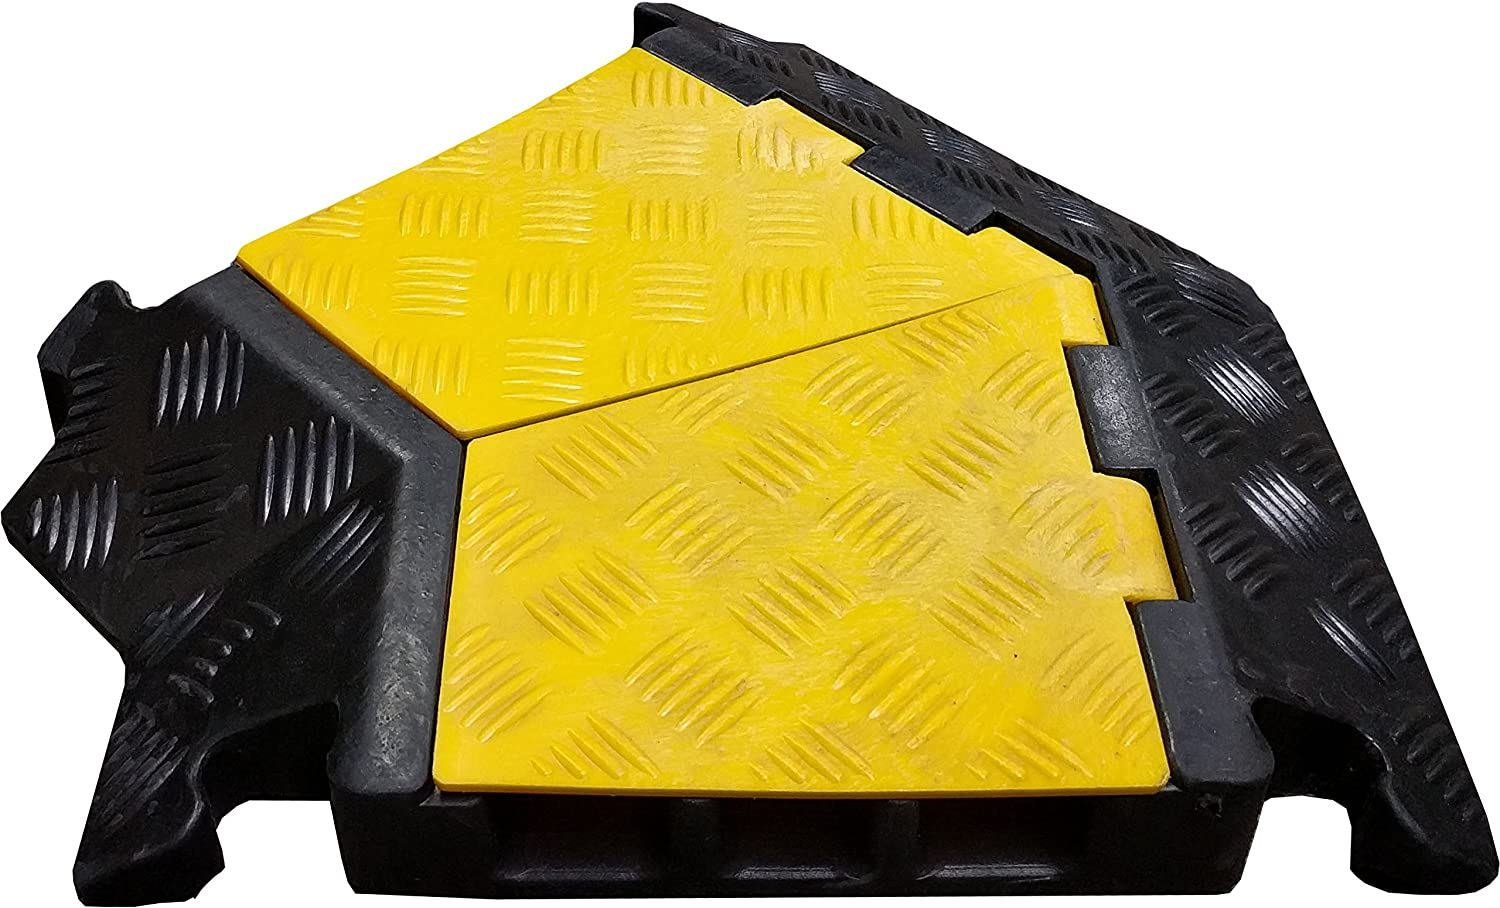 3 Channel Left Turn for Economical Rubber Cable Protector 45 Degree Black with Yellow Lid Electriduct 4330227199